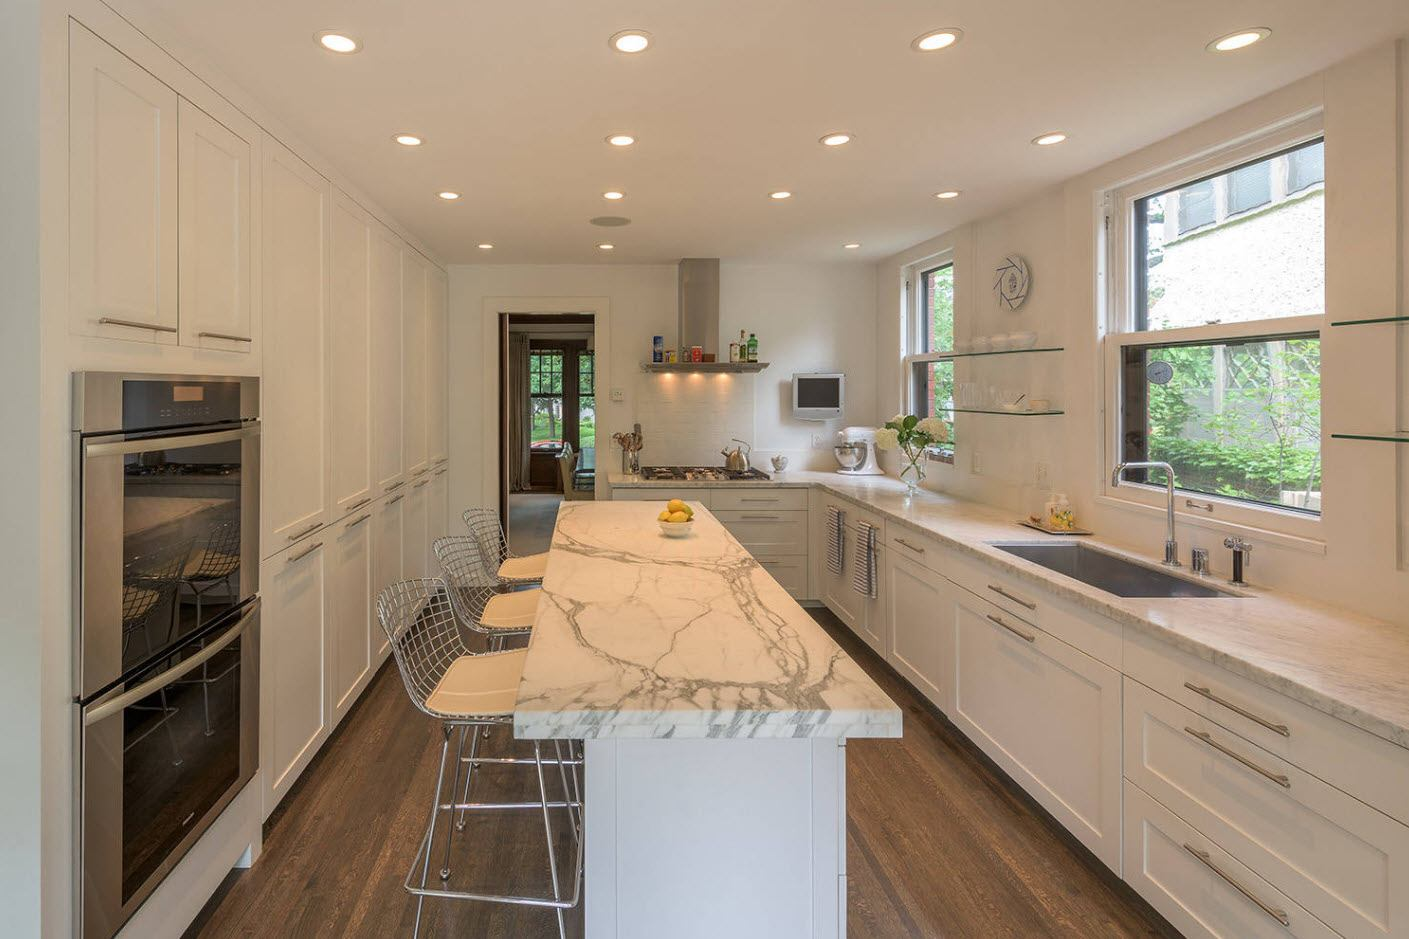 Intensive built-in lighting and marble imitating countertop of the island